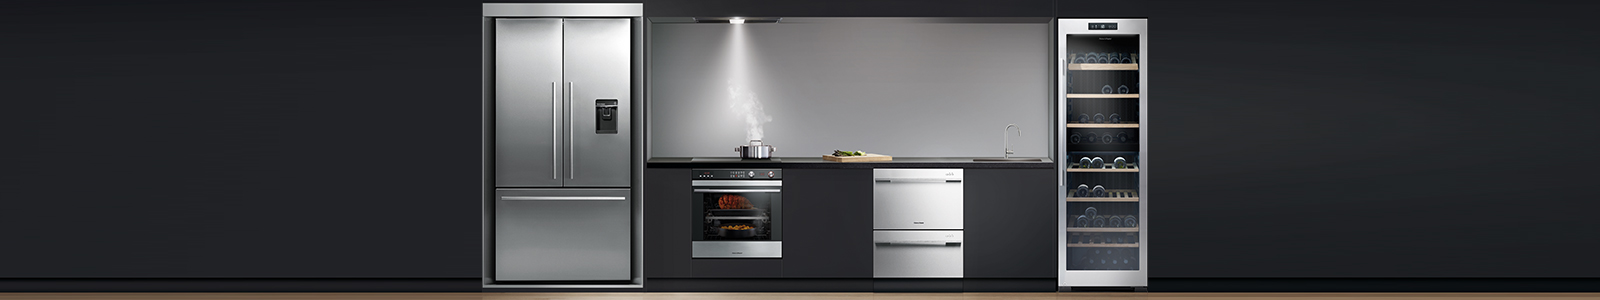 Appliances Online's banner